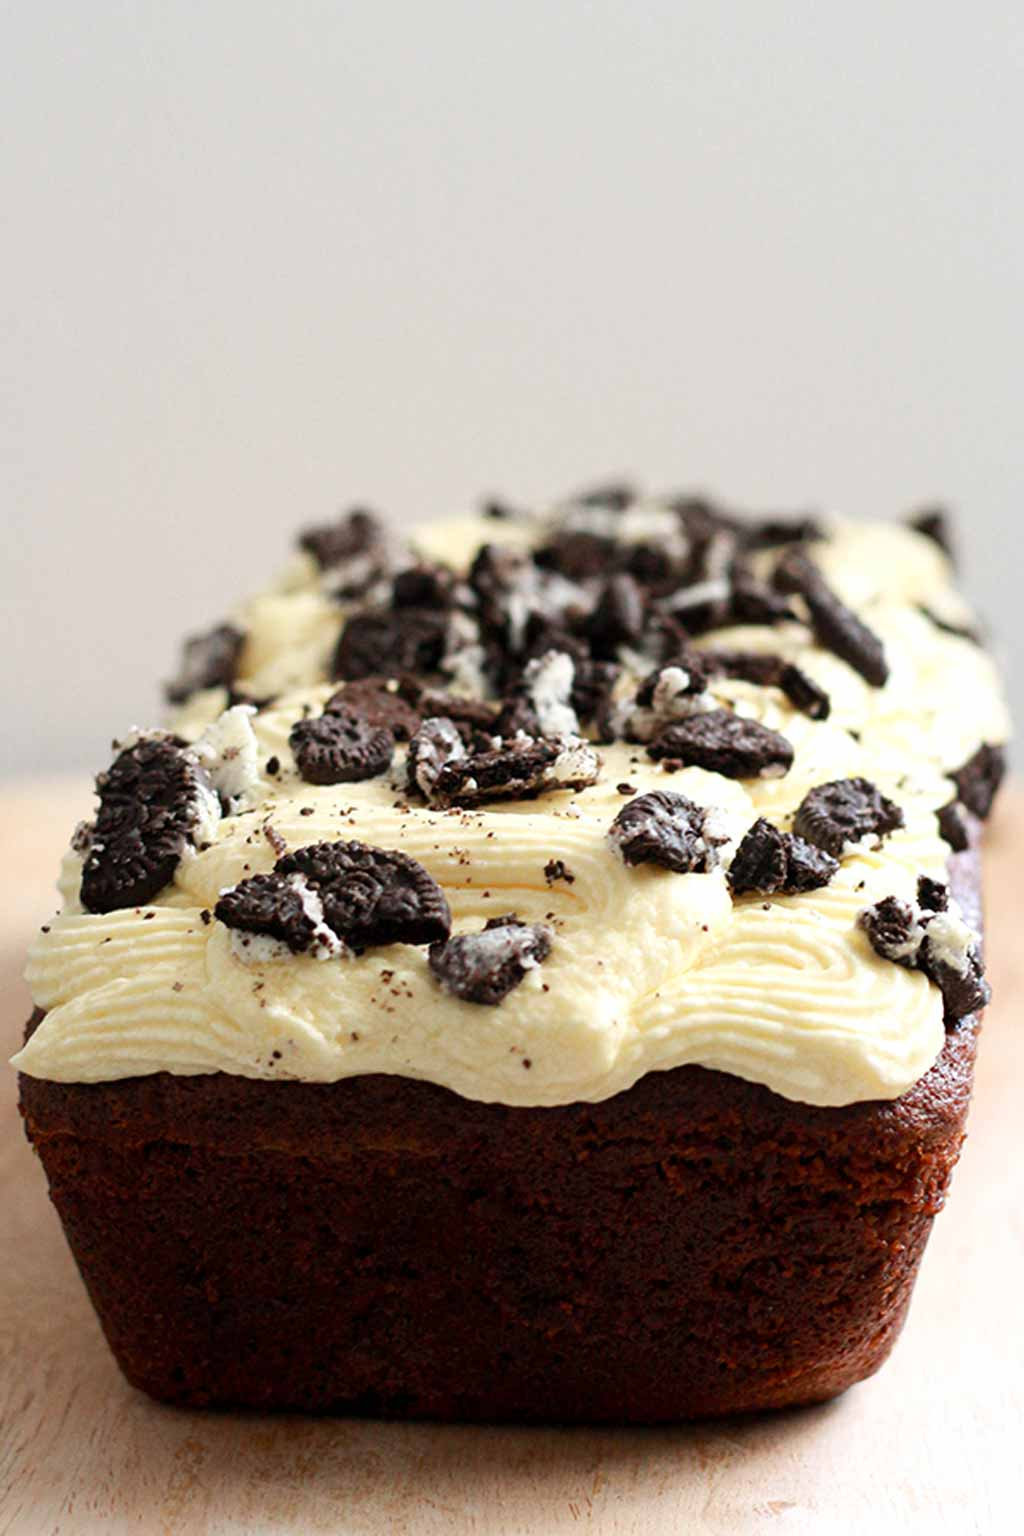 chocolate loaf cake with icing and crushed Oreo cookies on top